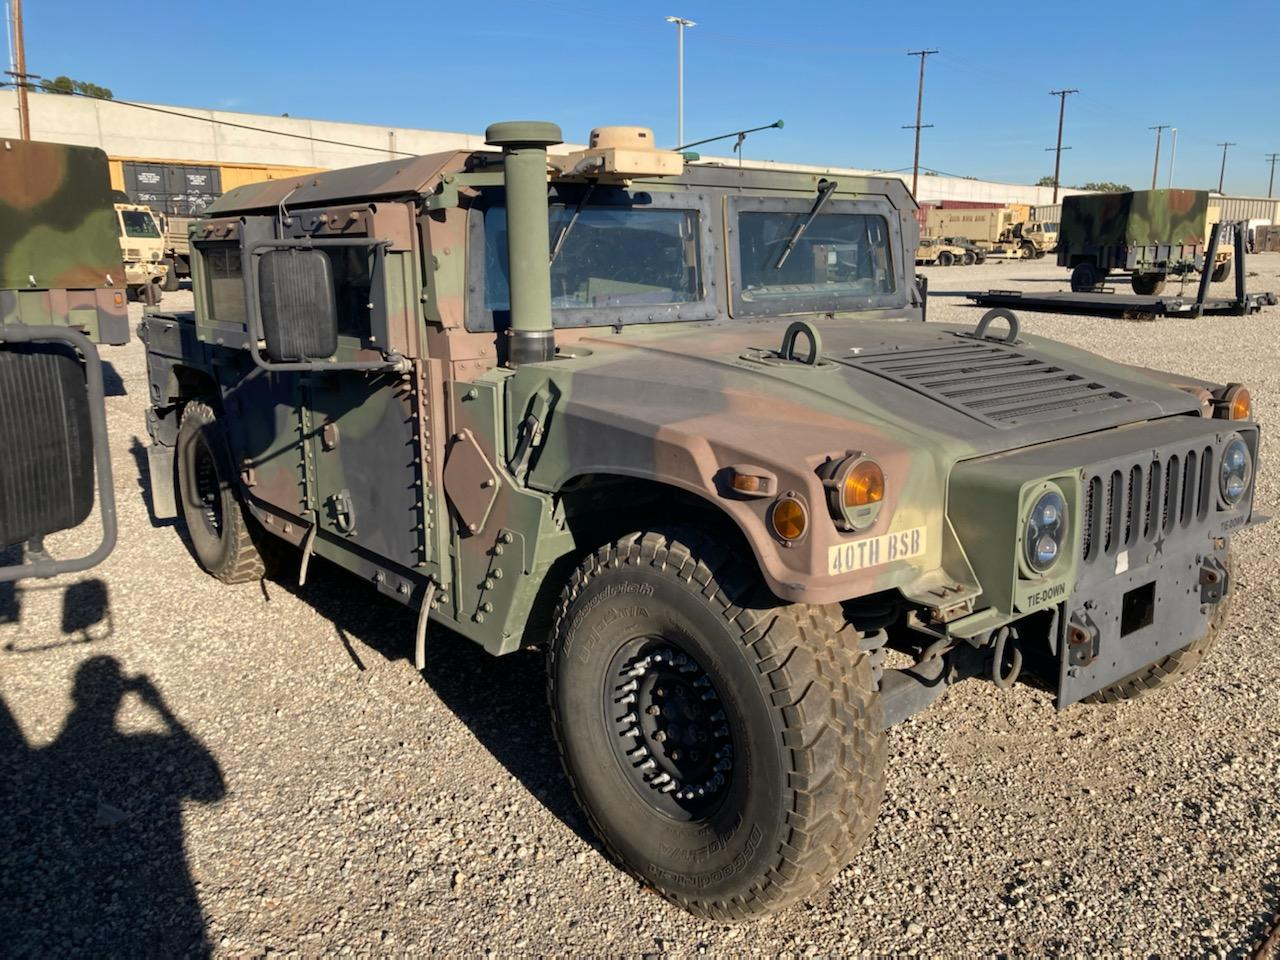 Armored military Humvee stolen in California, FBI search underway